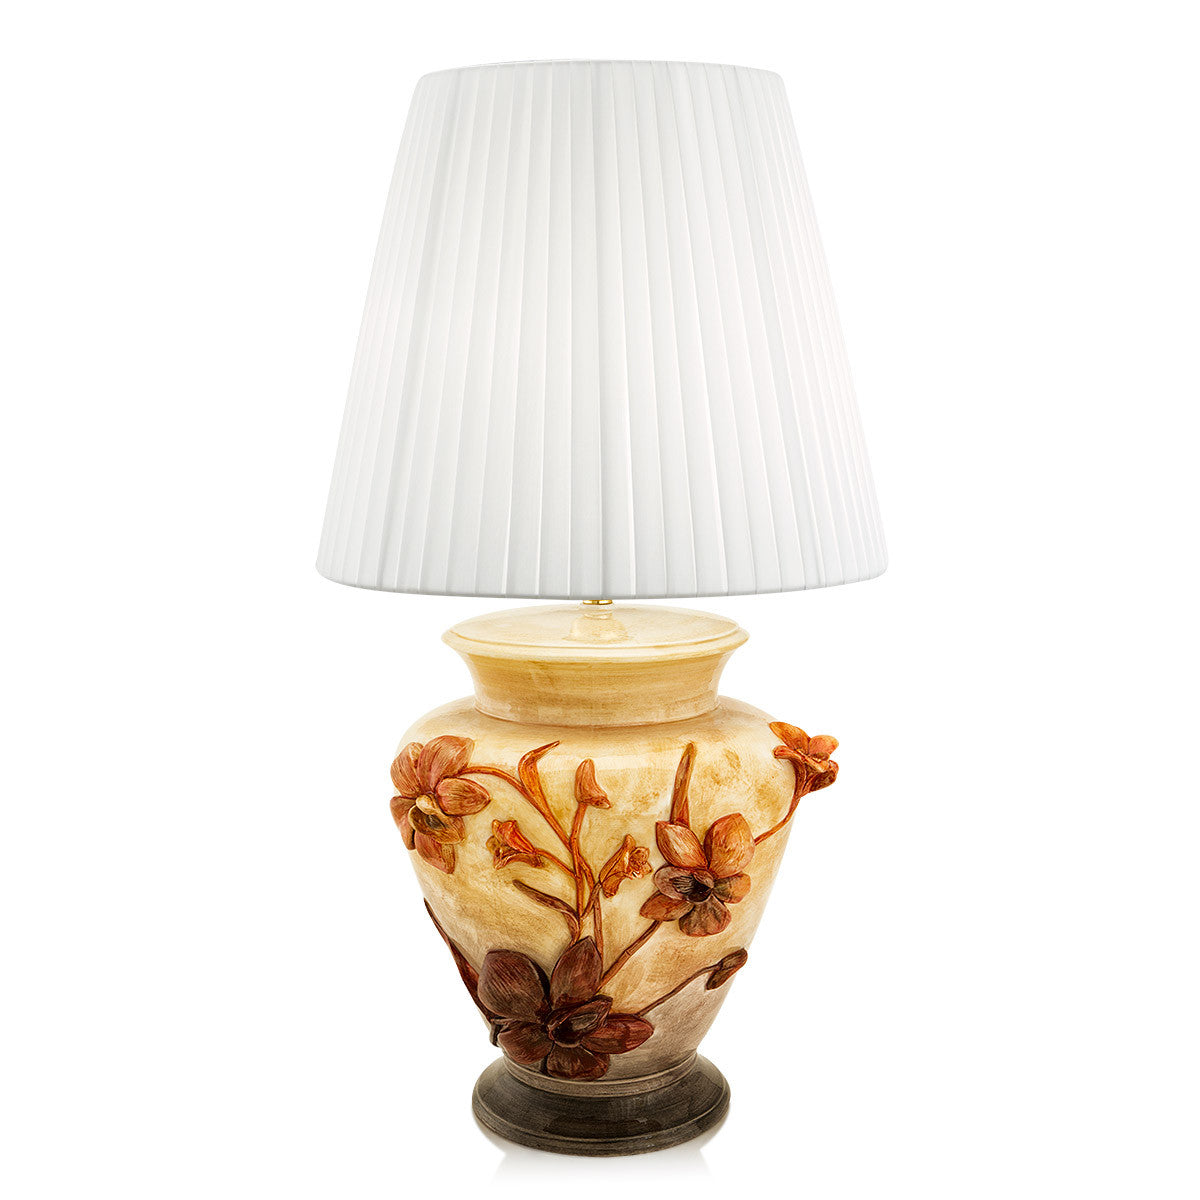 Hand painted pottery porcelain lamp Thai Orchid finished in warm colors